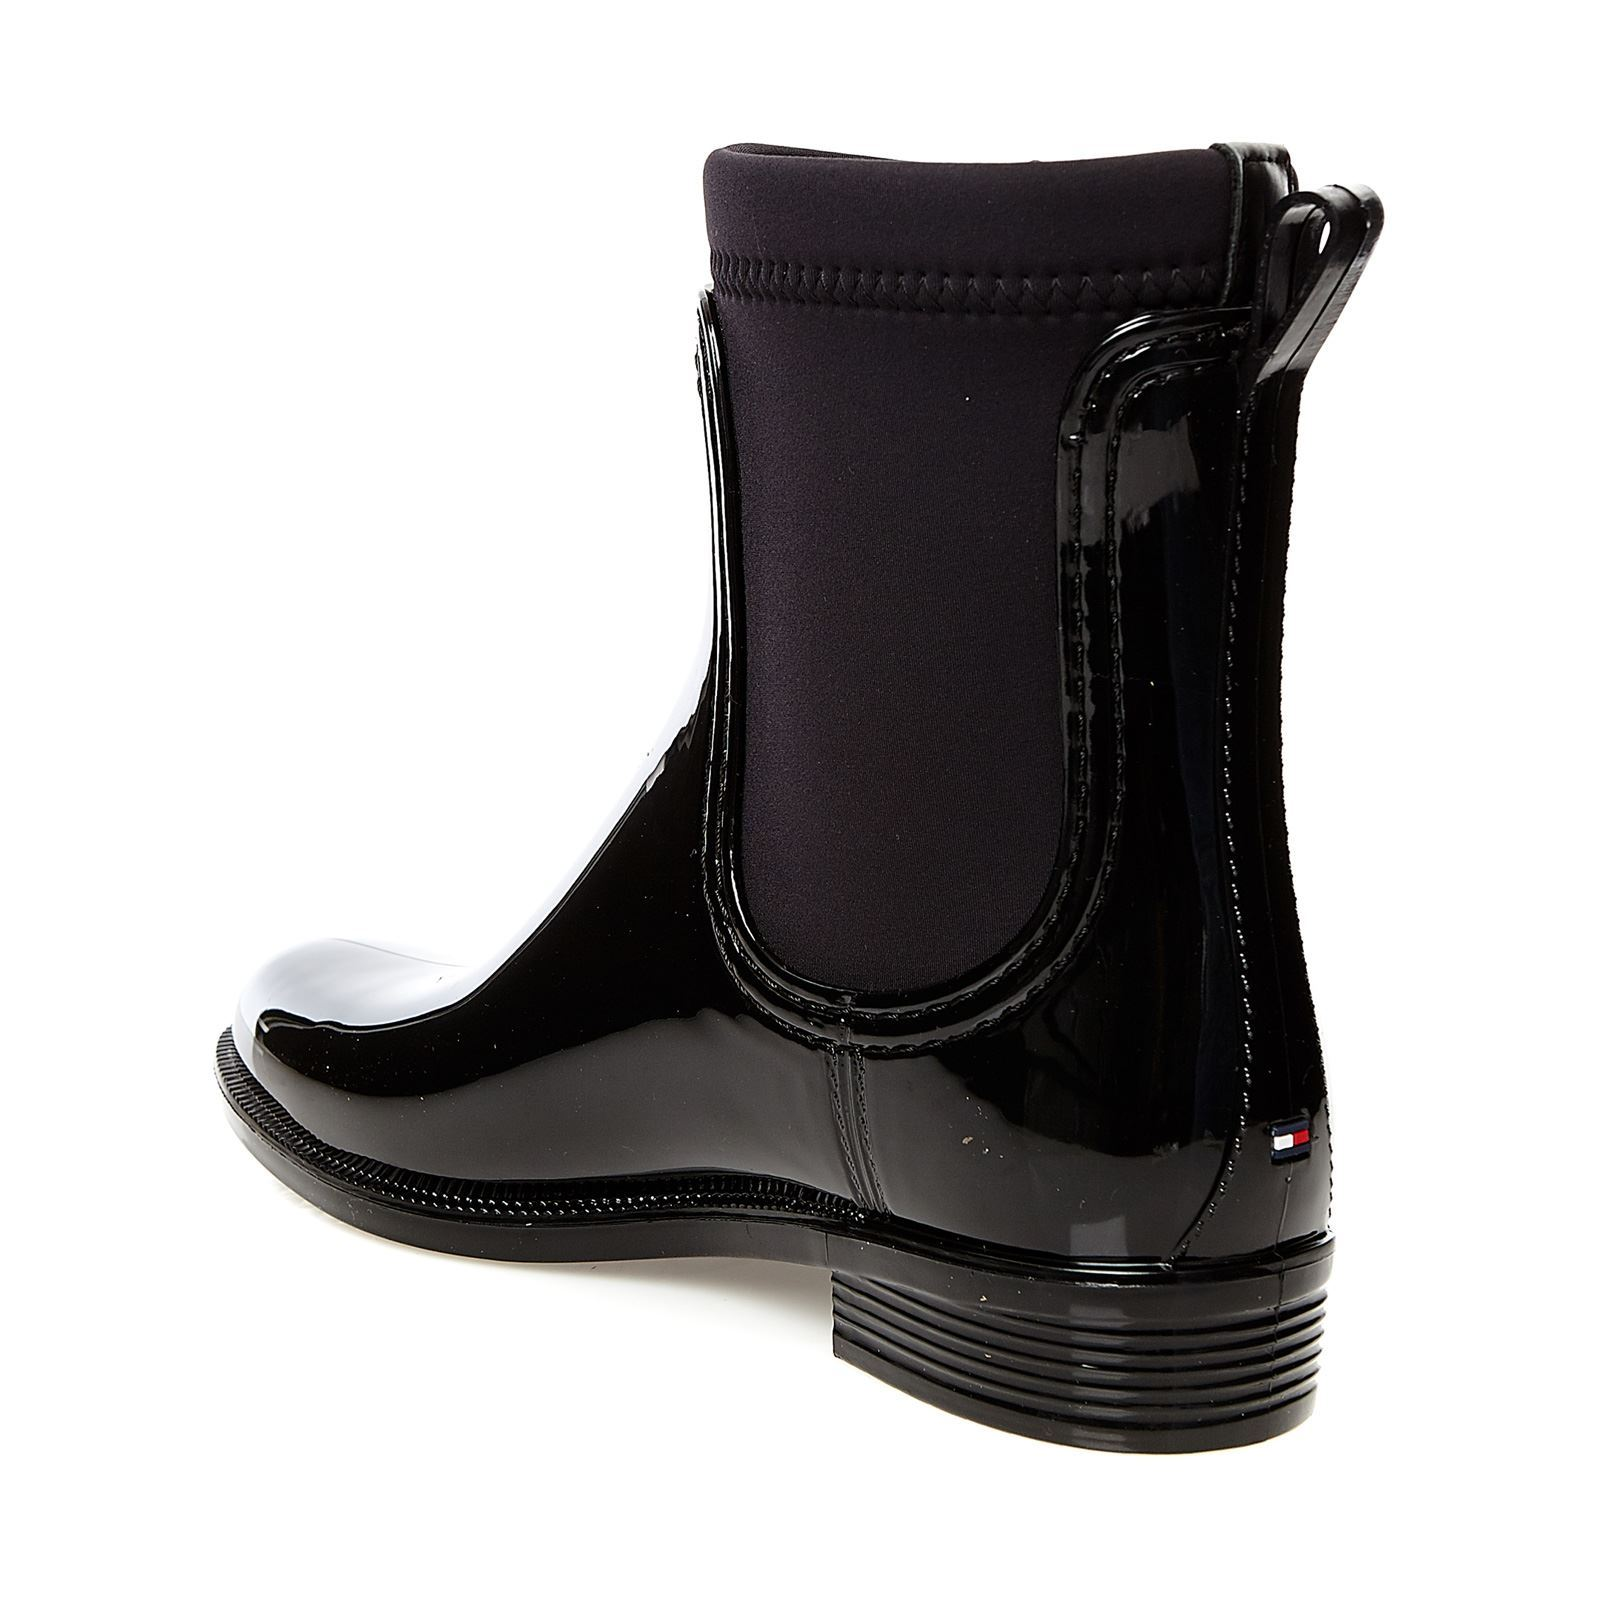 tommy hilfiger odette bottes de pluie noir brandalley. Black Bedroom Furniture Sets. Home Design Ideas